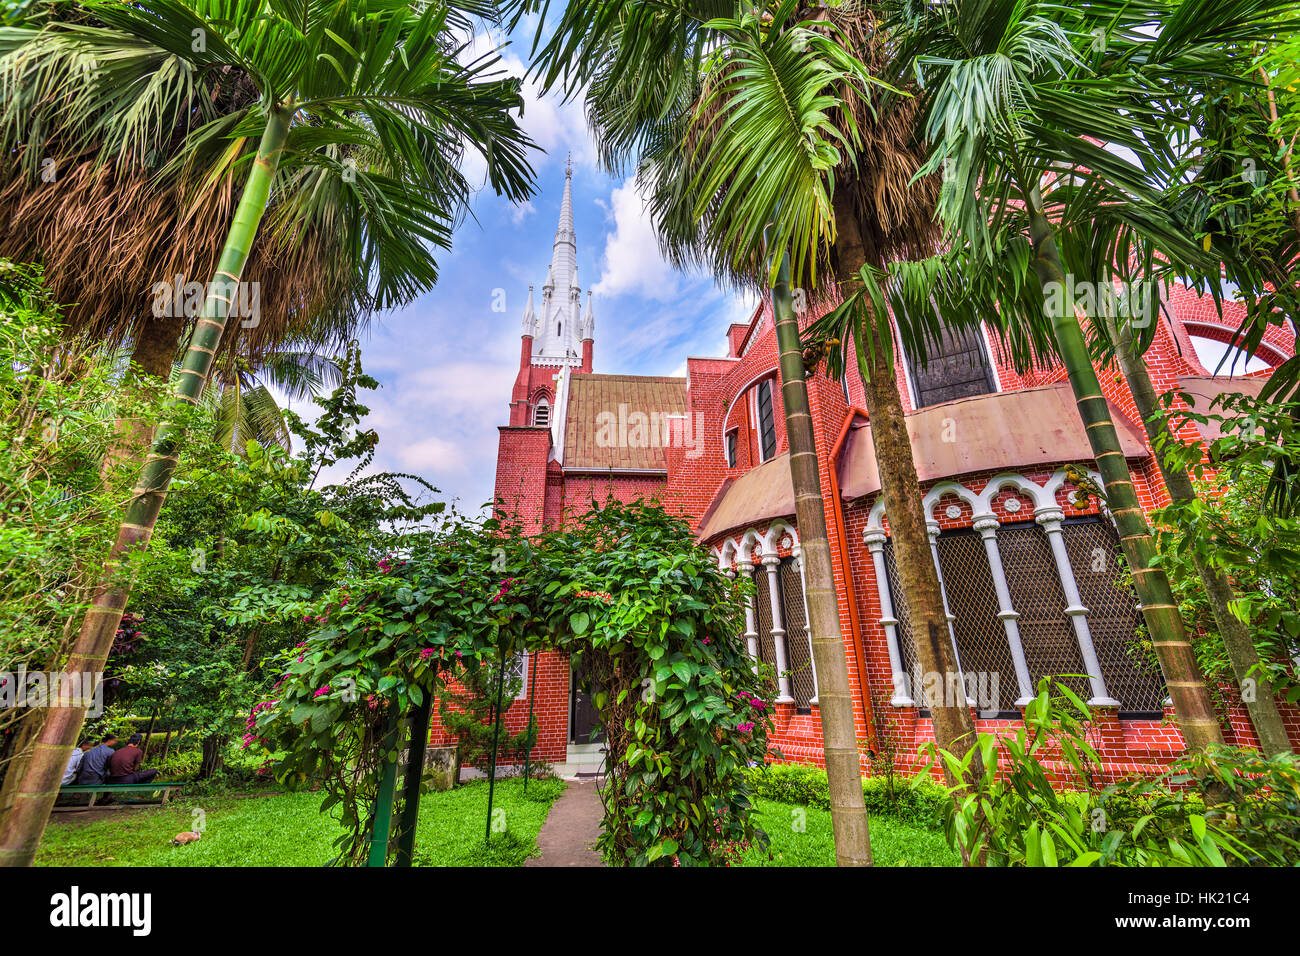 St. Mary's Cathedral in Yangon, Myanmar. - Stock Image